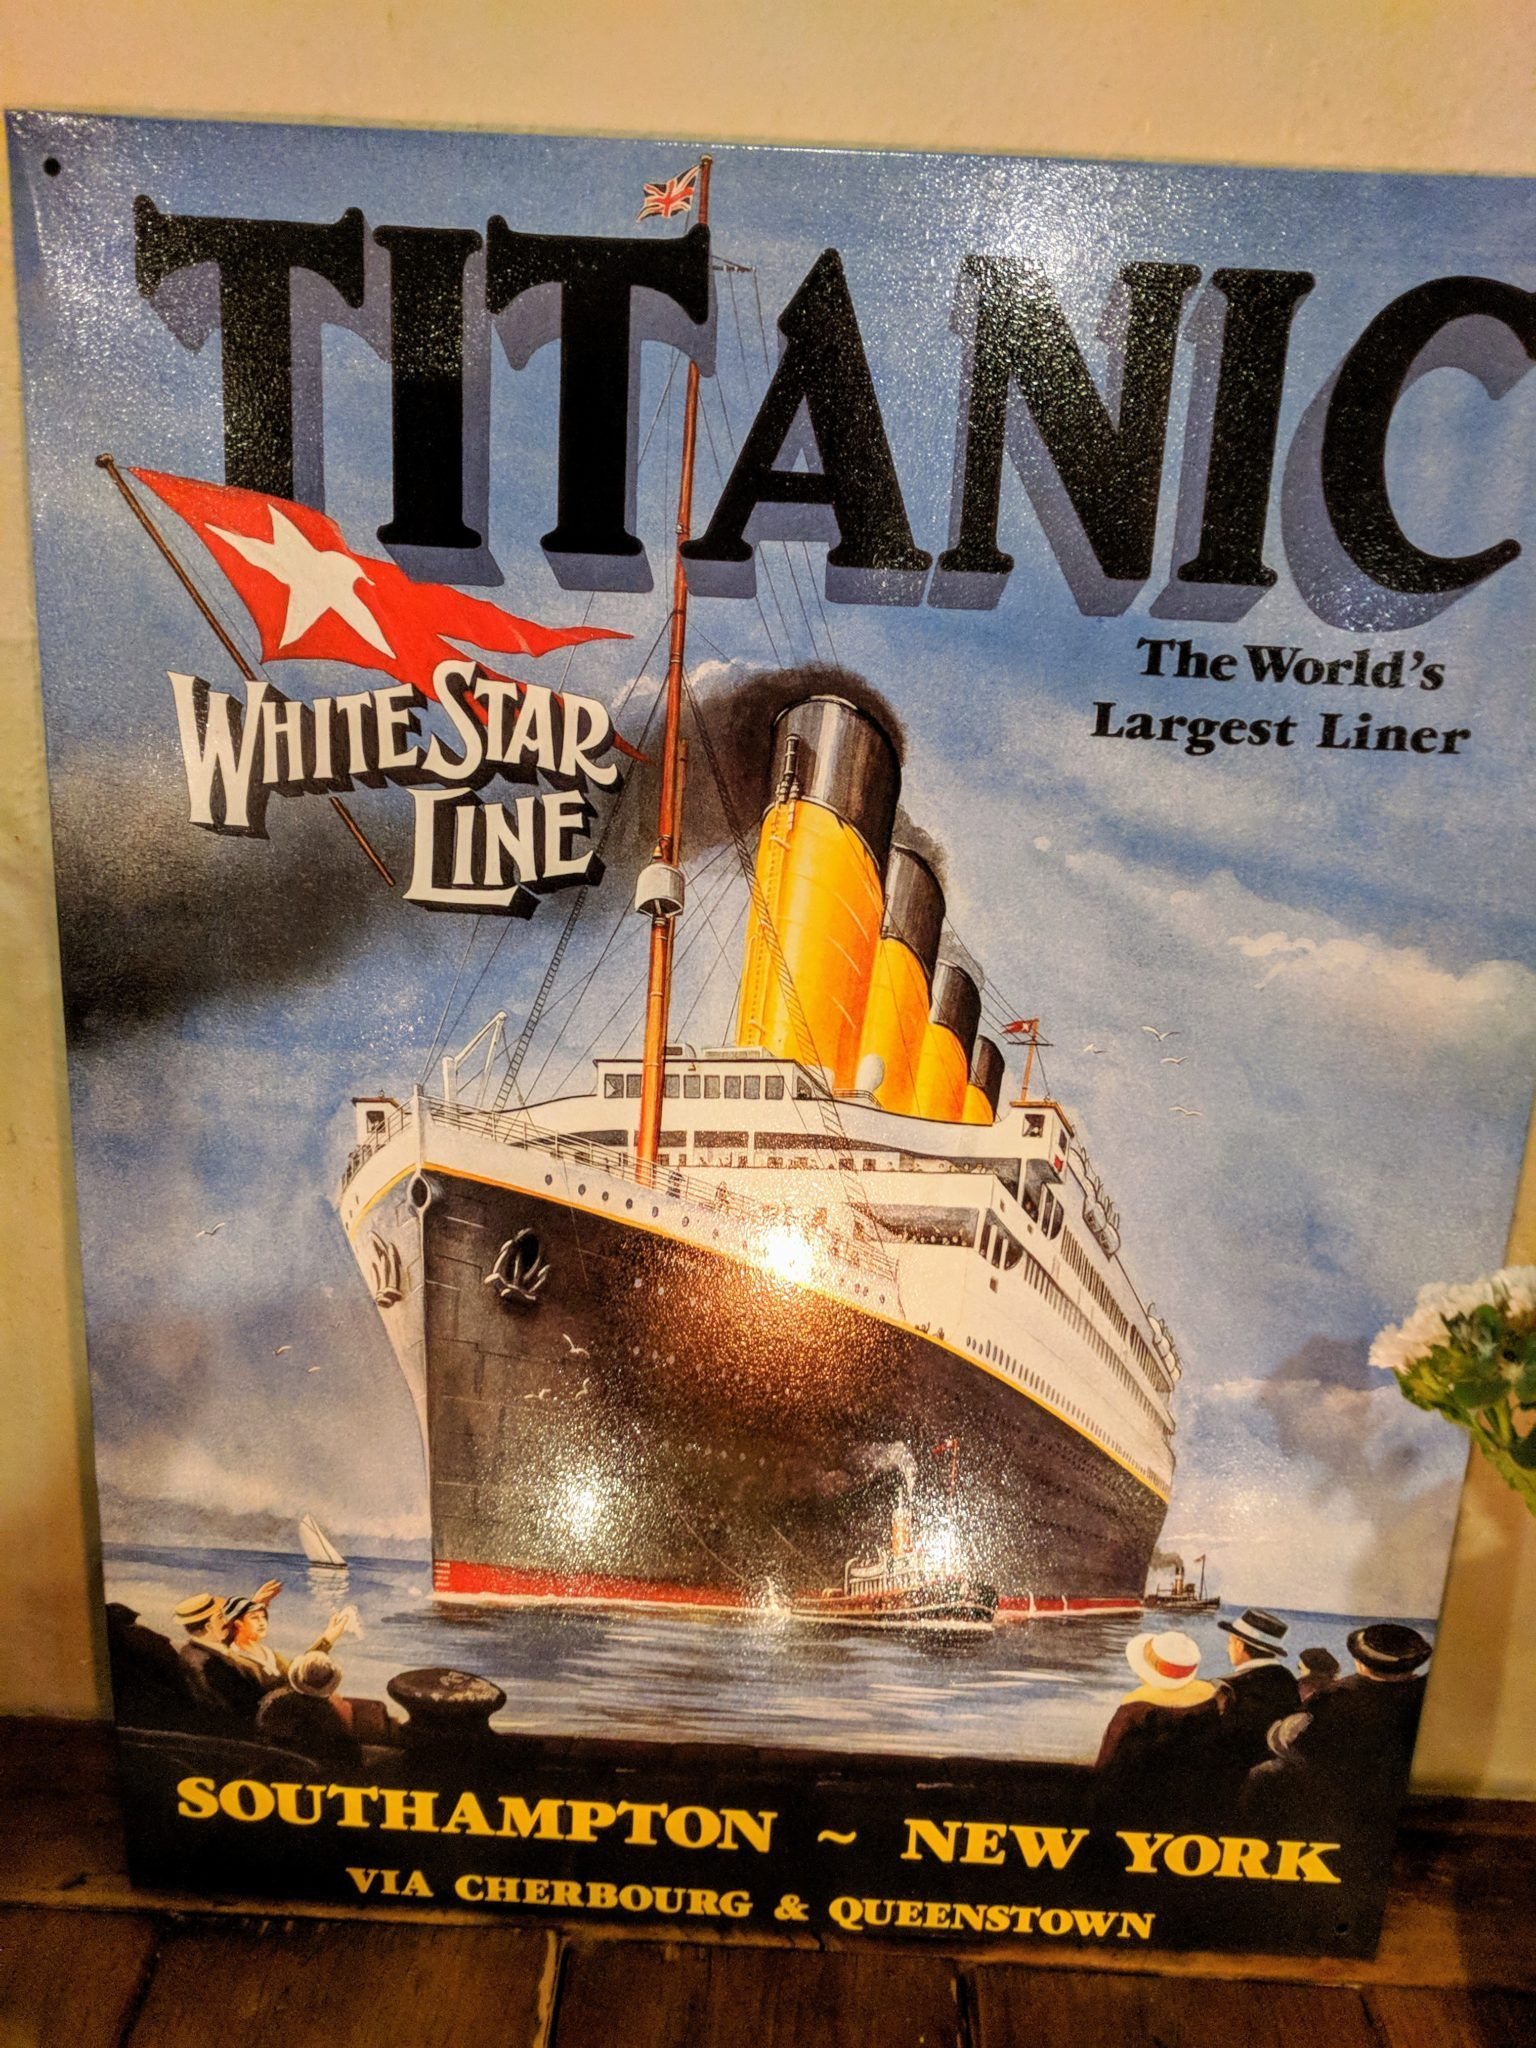 Titanic Themed Party For Aai Adventures In Dance